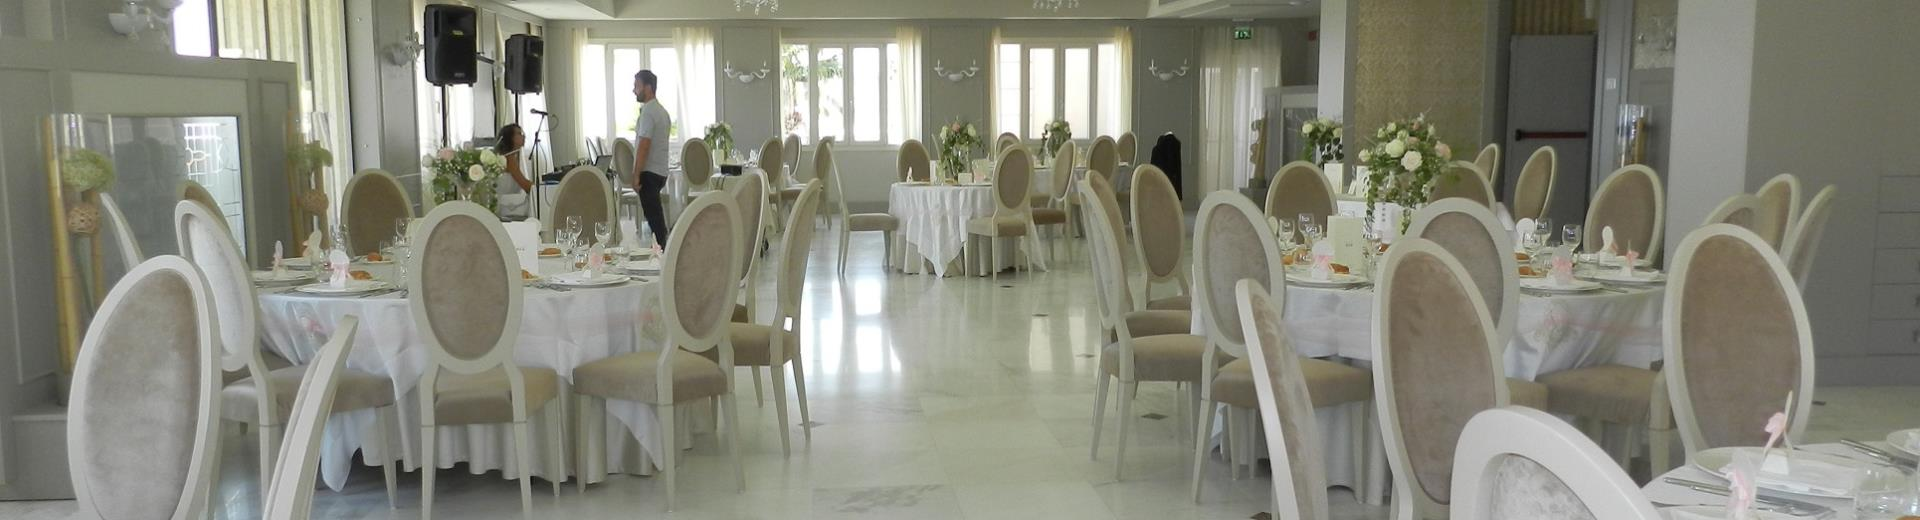 For your reception in Catanzaro Lido choose BW Plus Hotel Perla del Porto 4 stars